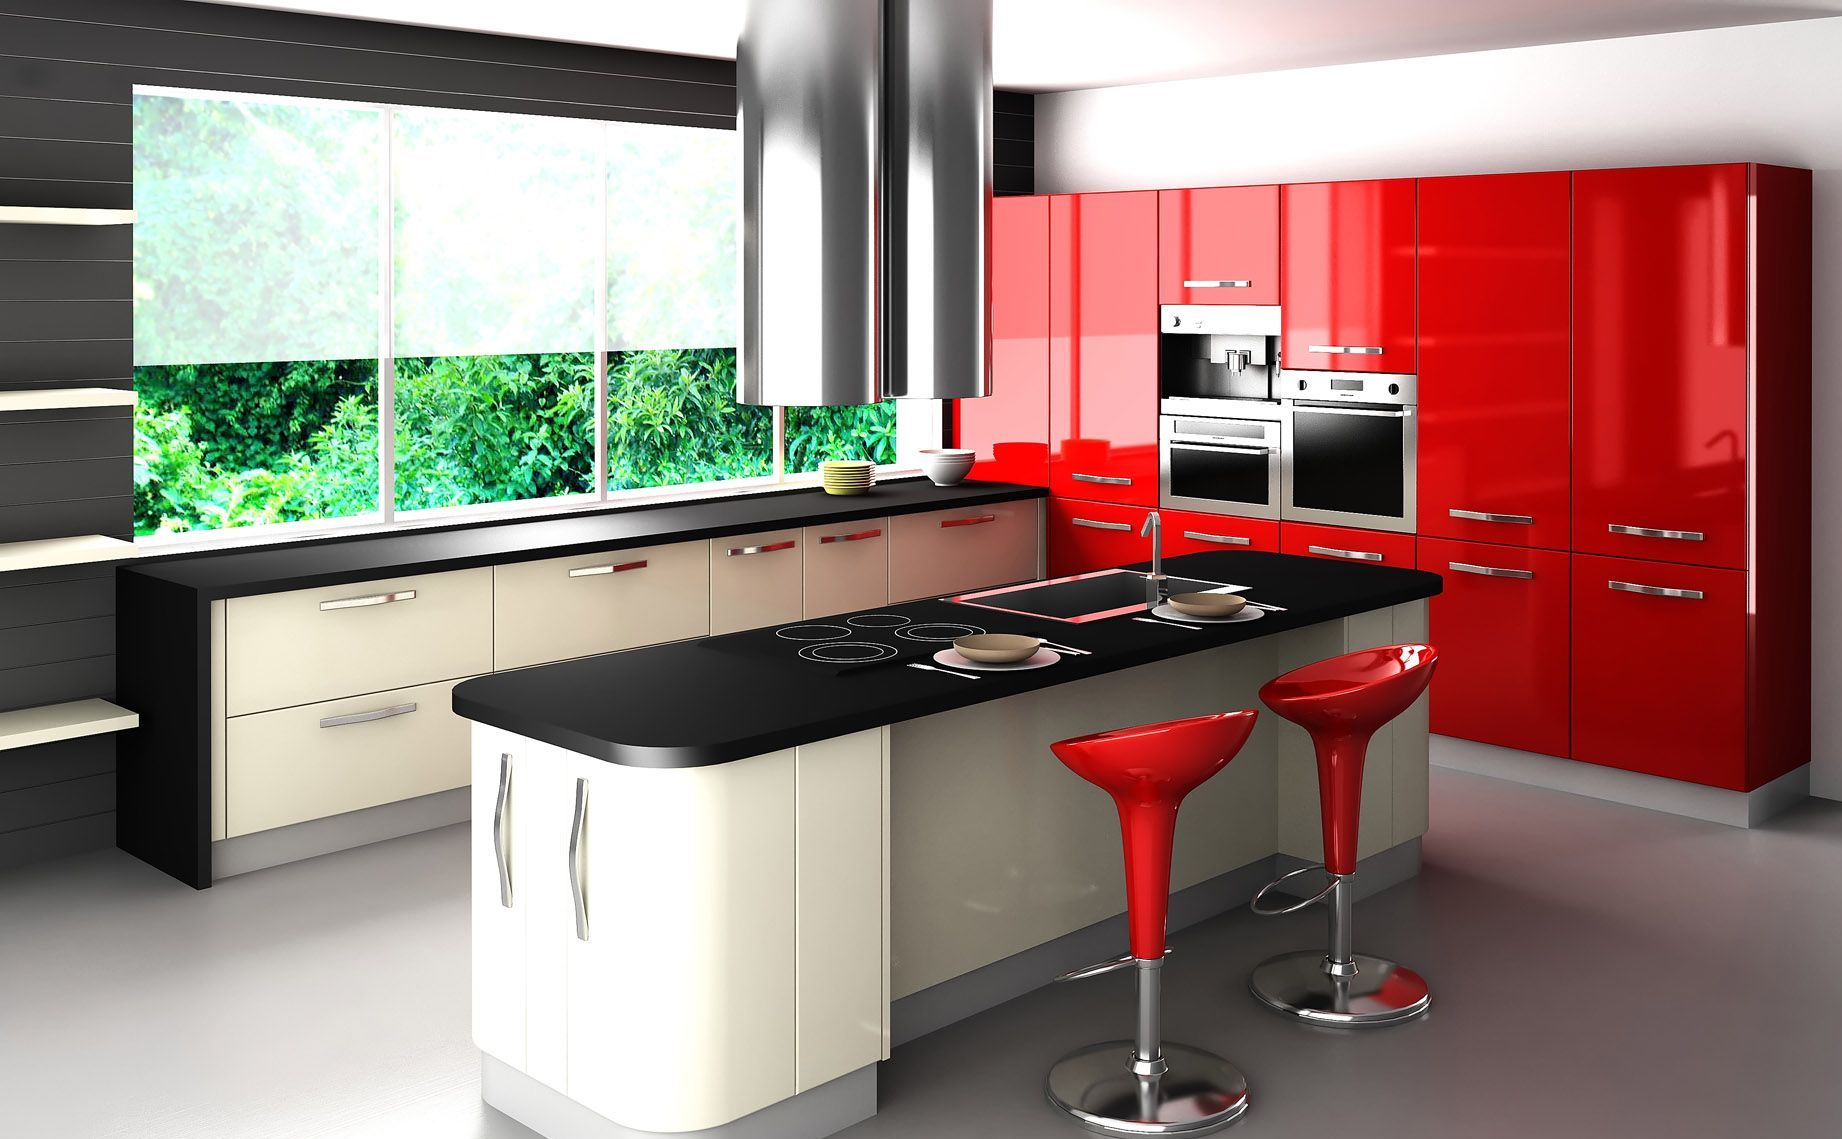 Best-kitchen-designs-as-small-kitchen-design